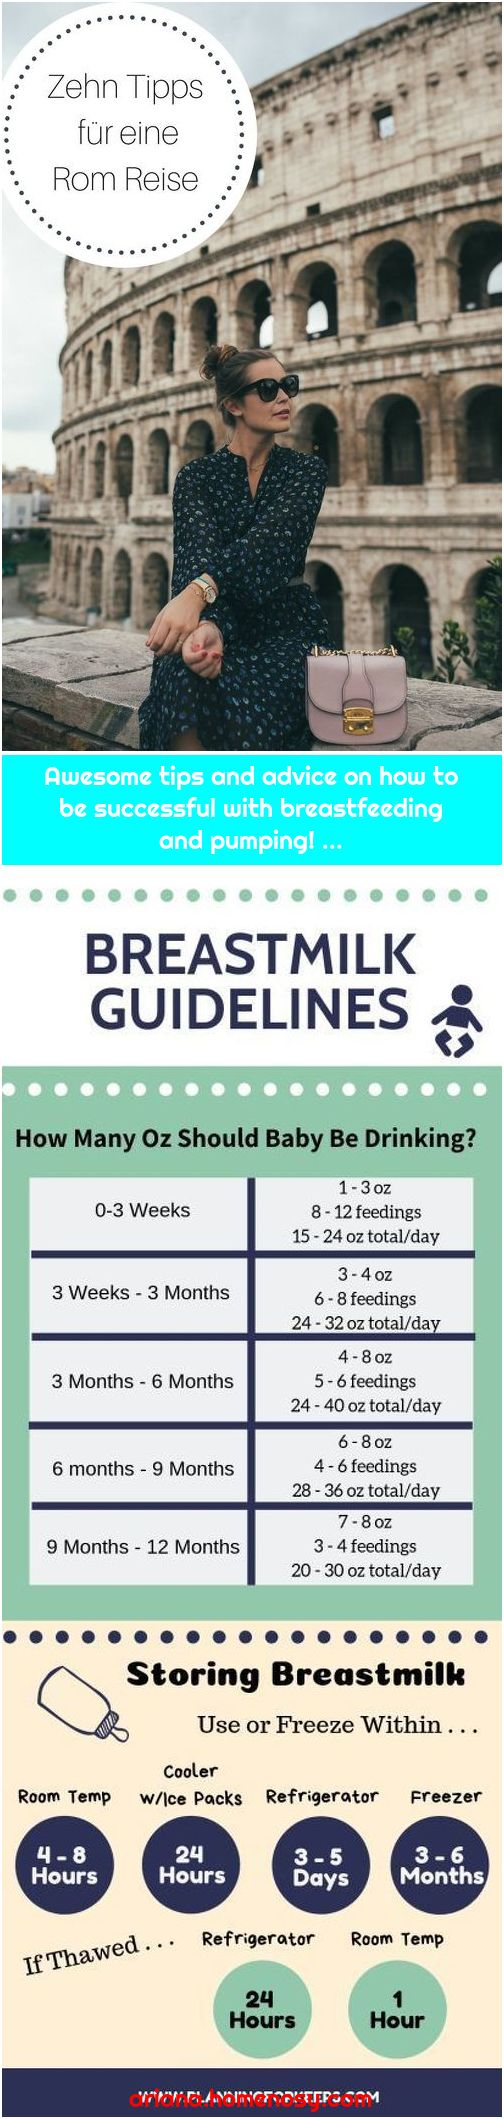 Awesome tips and advice on how to be successful with breastfeeding and pumping! ...